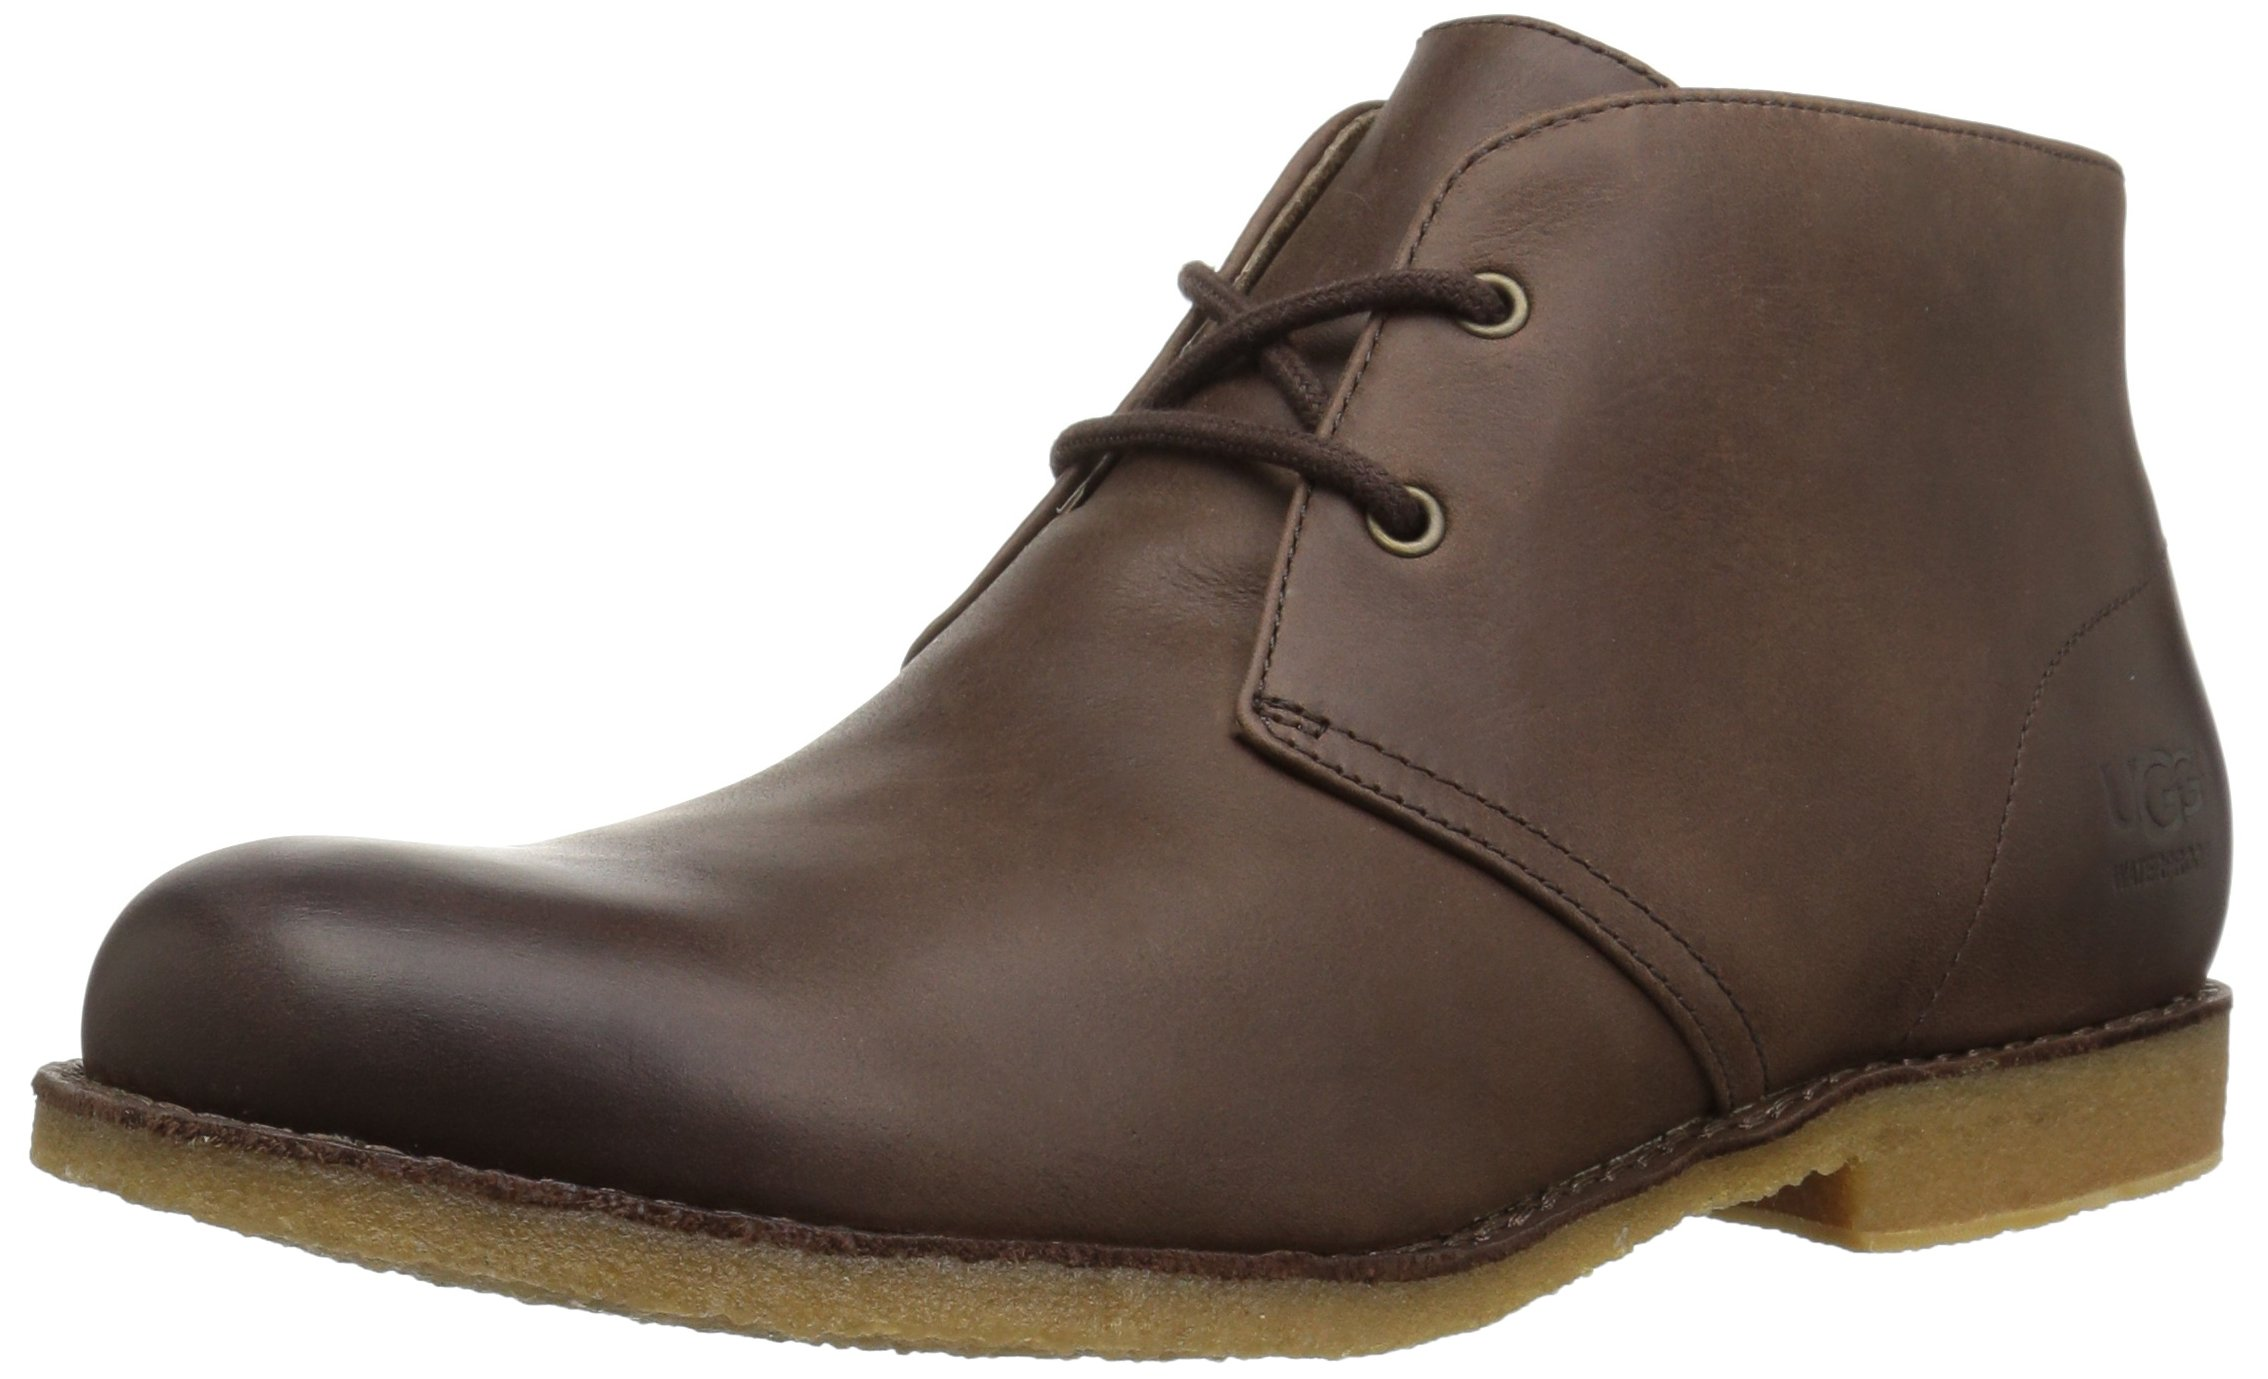 UGG Men's Leighton WP Chukka Boot, Grizzly, 9 M US